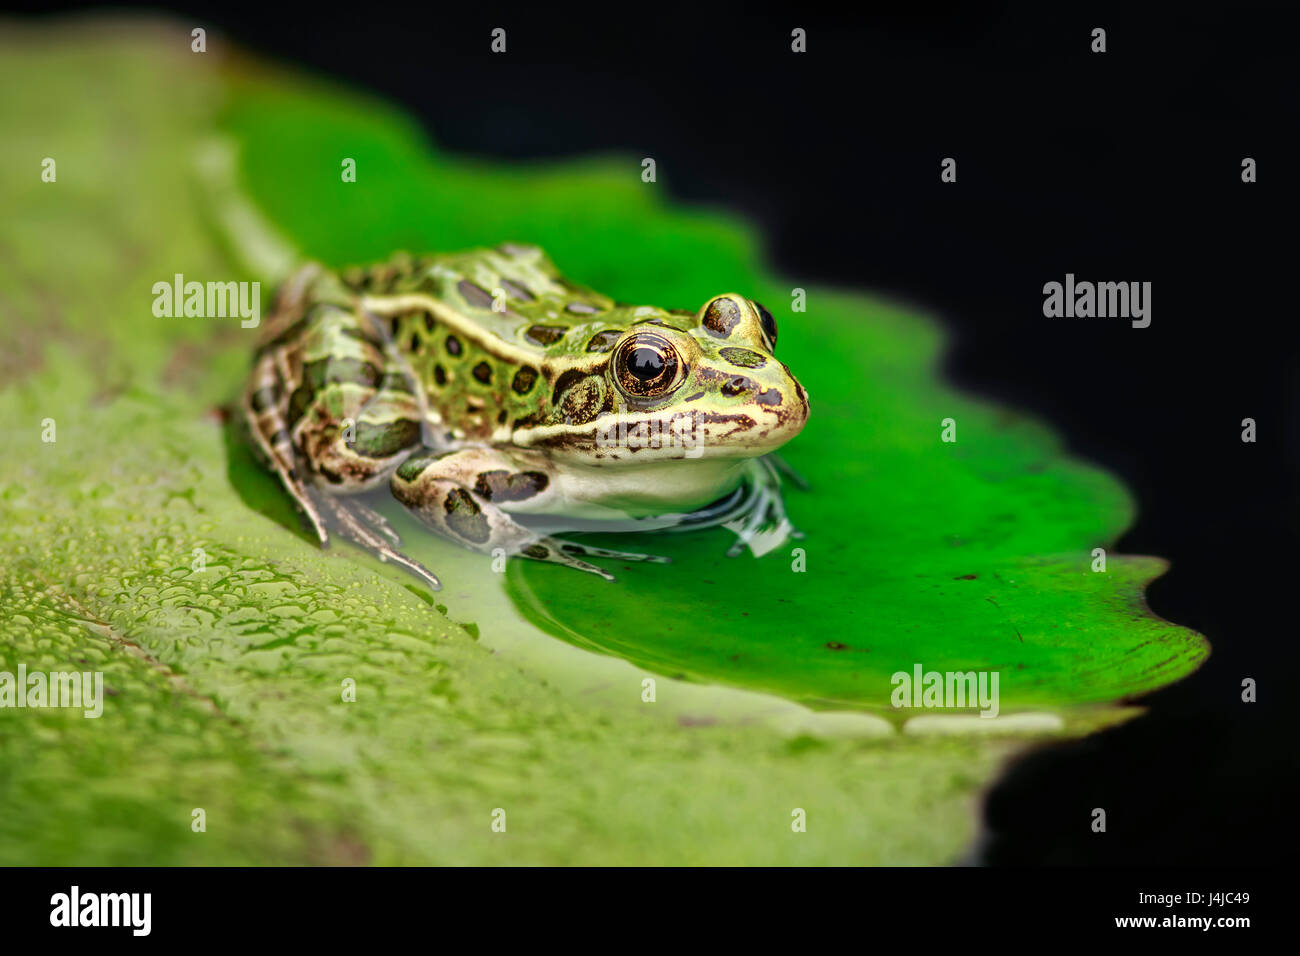 A Northern Leopard Frog on a lily pad, close up - Stock Image